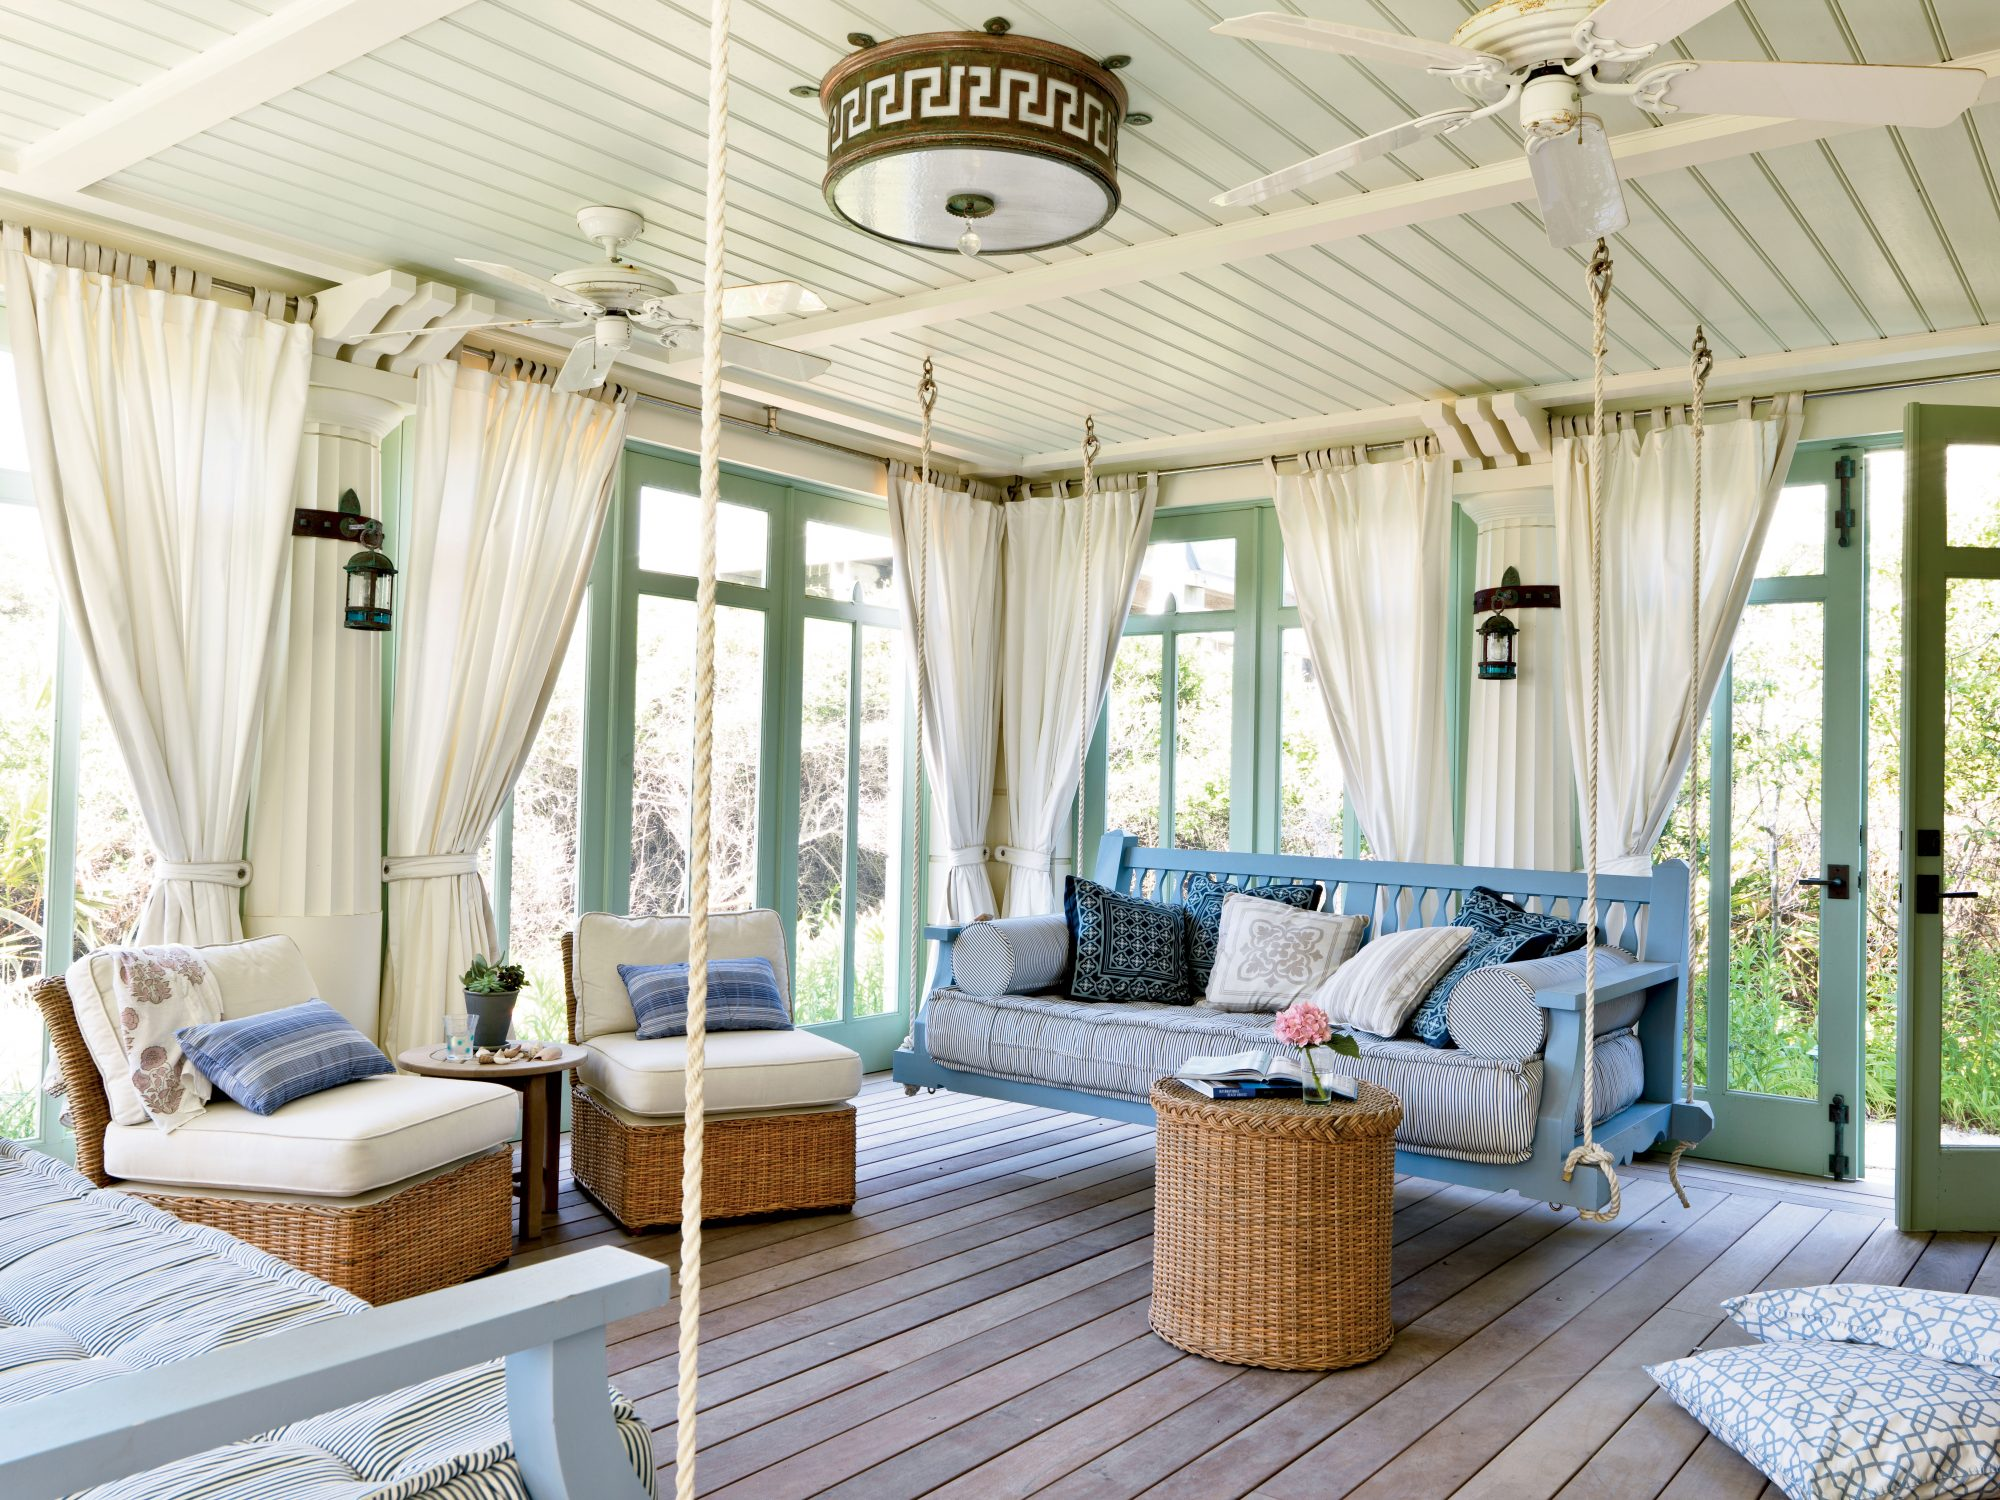 Adding floor-length drapes in water-resistant fabric is a great way to make outdoor spaces feel like extensions of the home. They provide cooling shade in the summer, insulation and warmth in the winter, and privacy all year round.